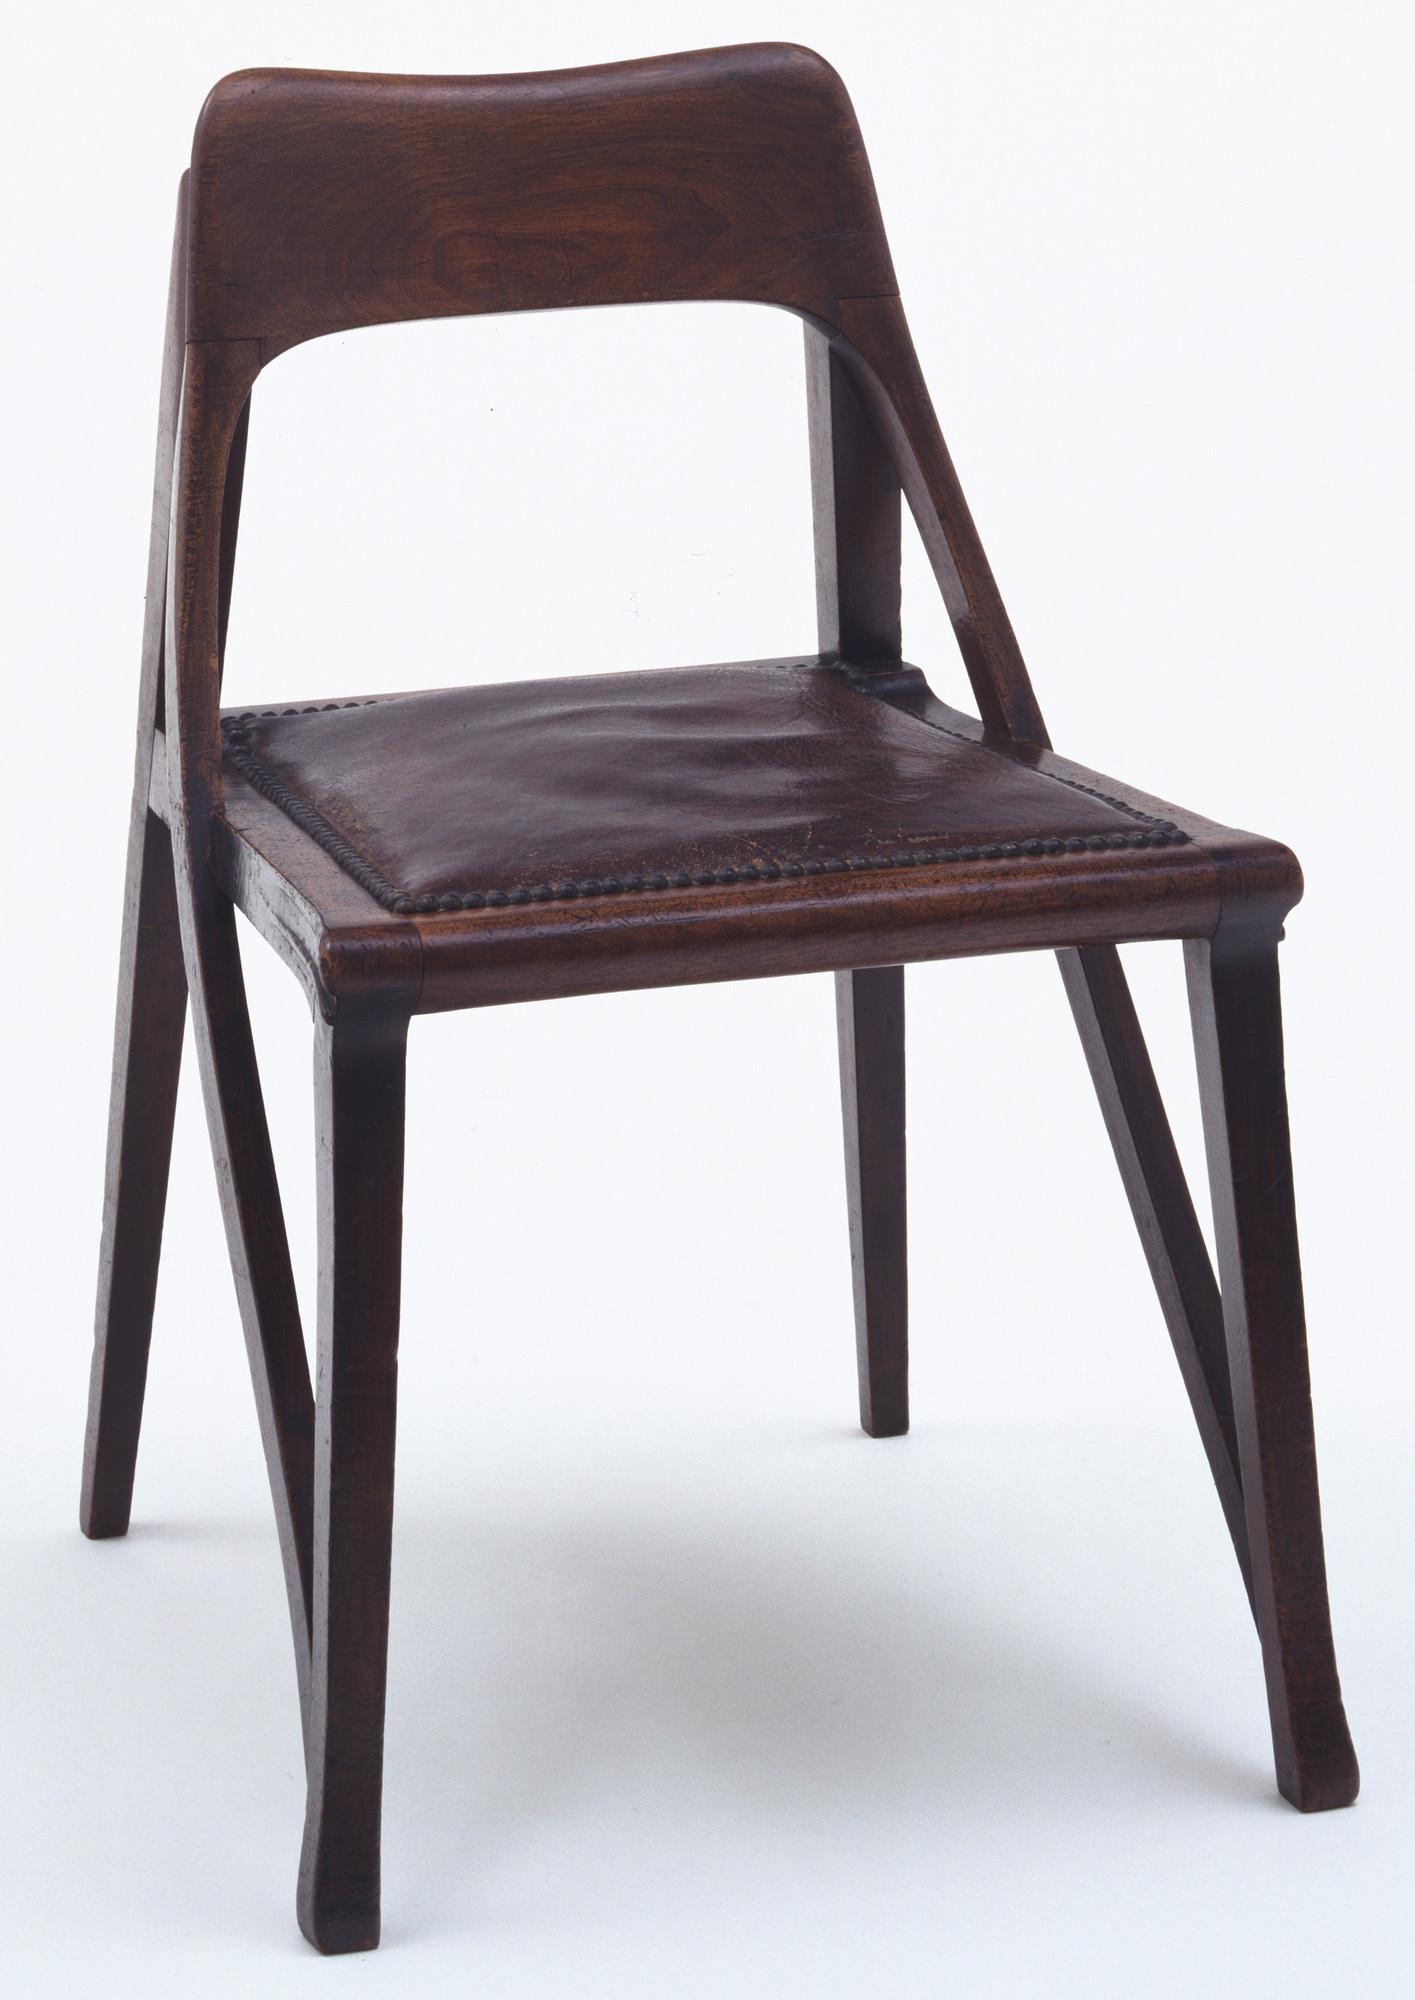 Richard Riemerschmid. Side Chair. c. 1898-99